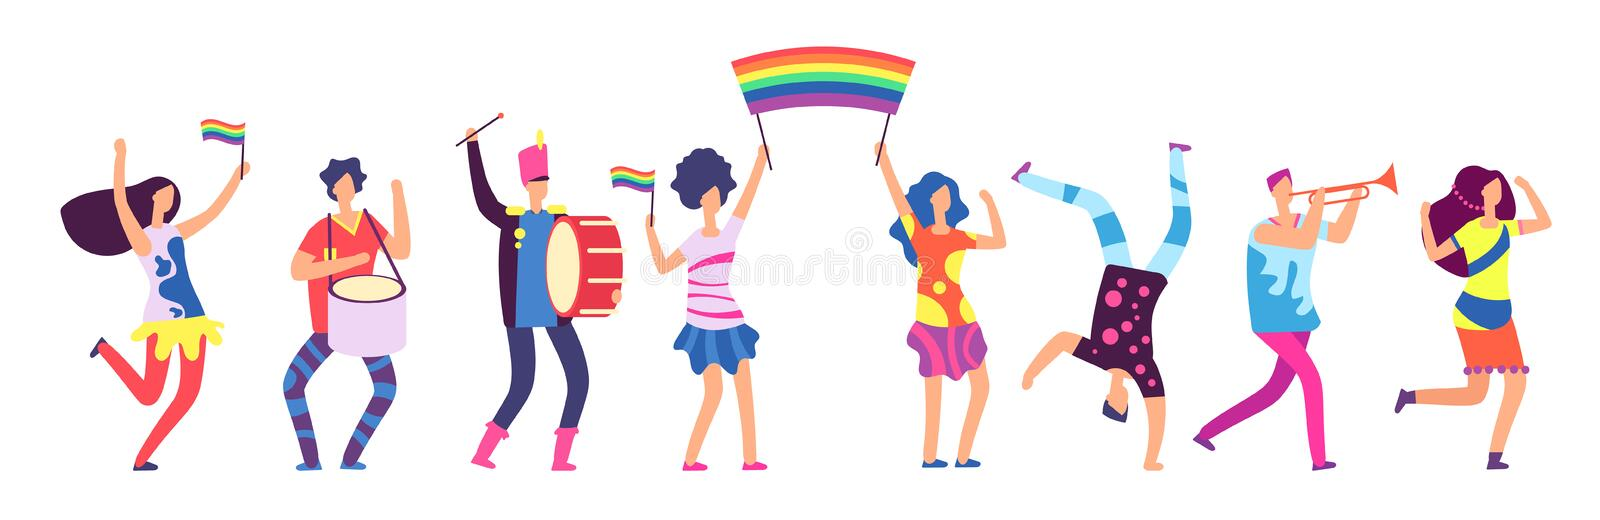 Lgbt parade. People holding rainbow flag. Gay love pride, sexual discrimination protest vector concept stock illustration